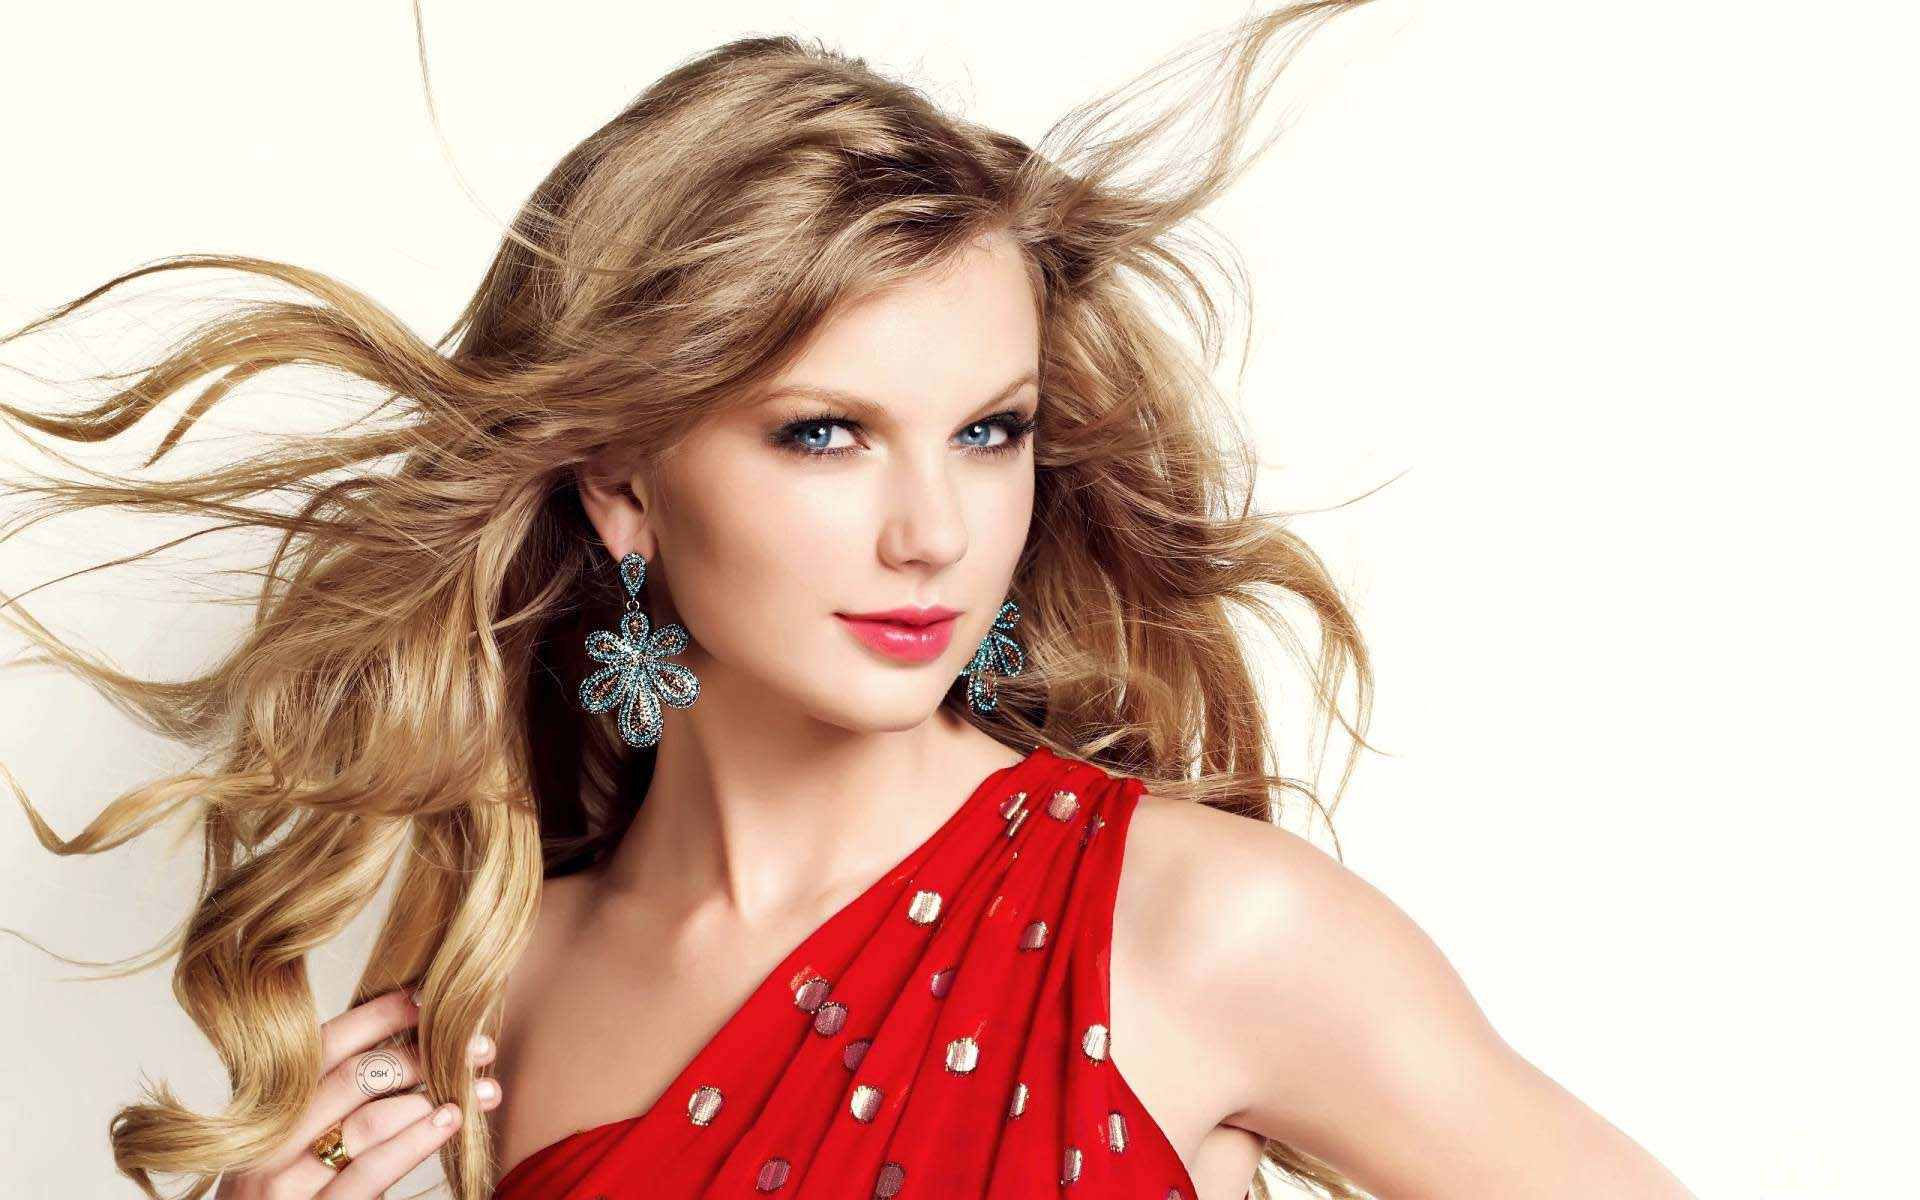 taylor swift beautiful widescreen pictures